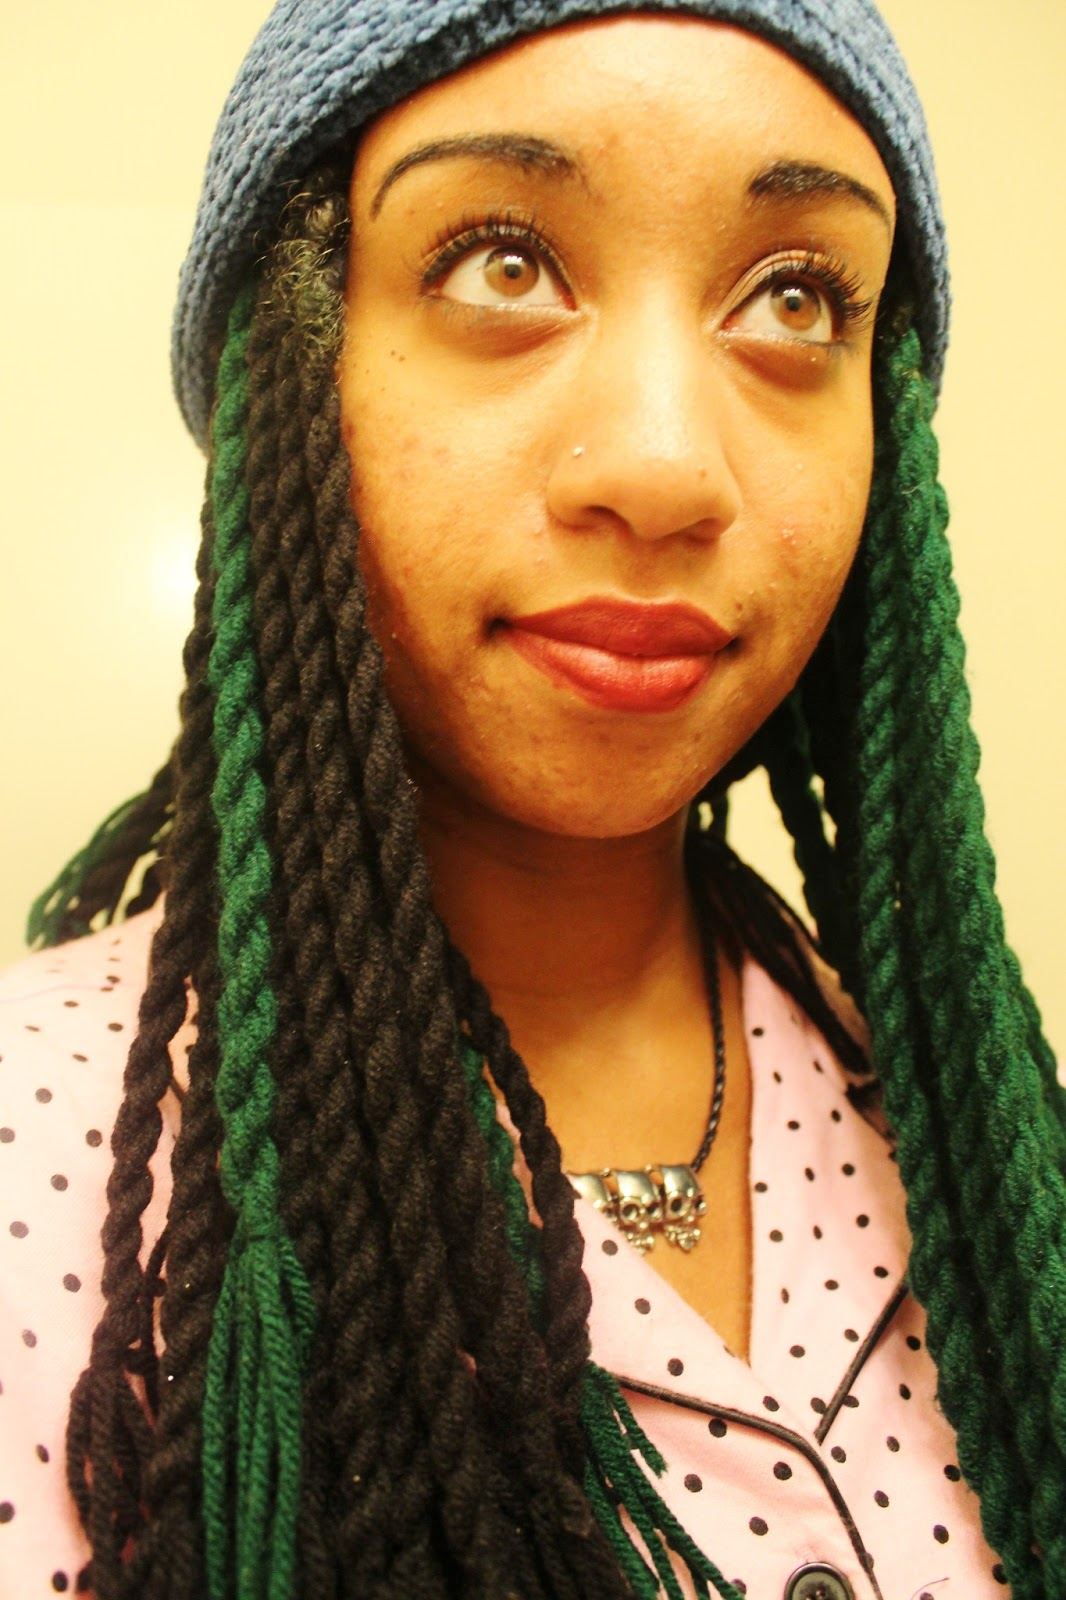 Dear Kitty D Hairstyle Yarn Twists Braids